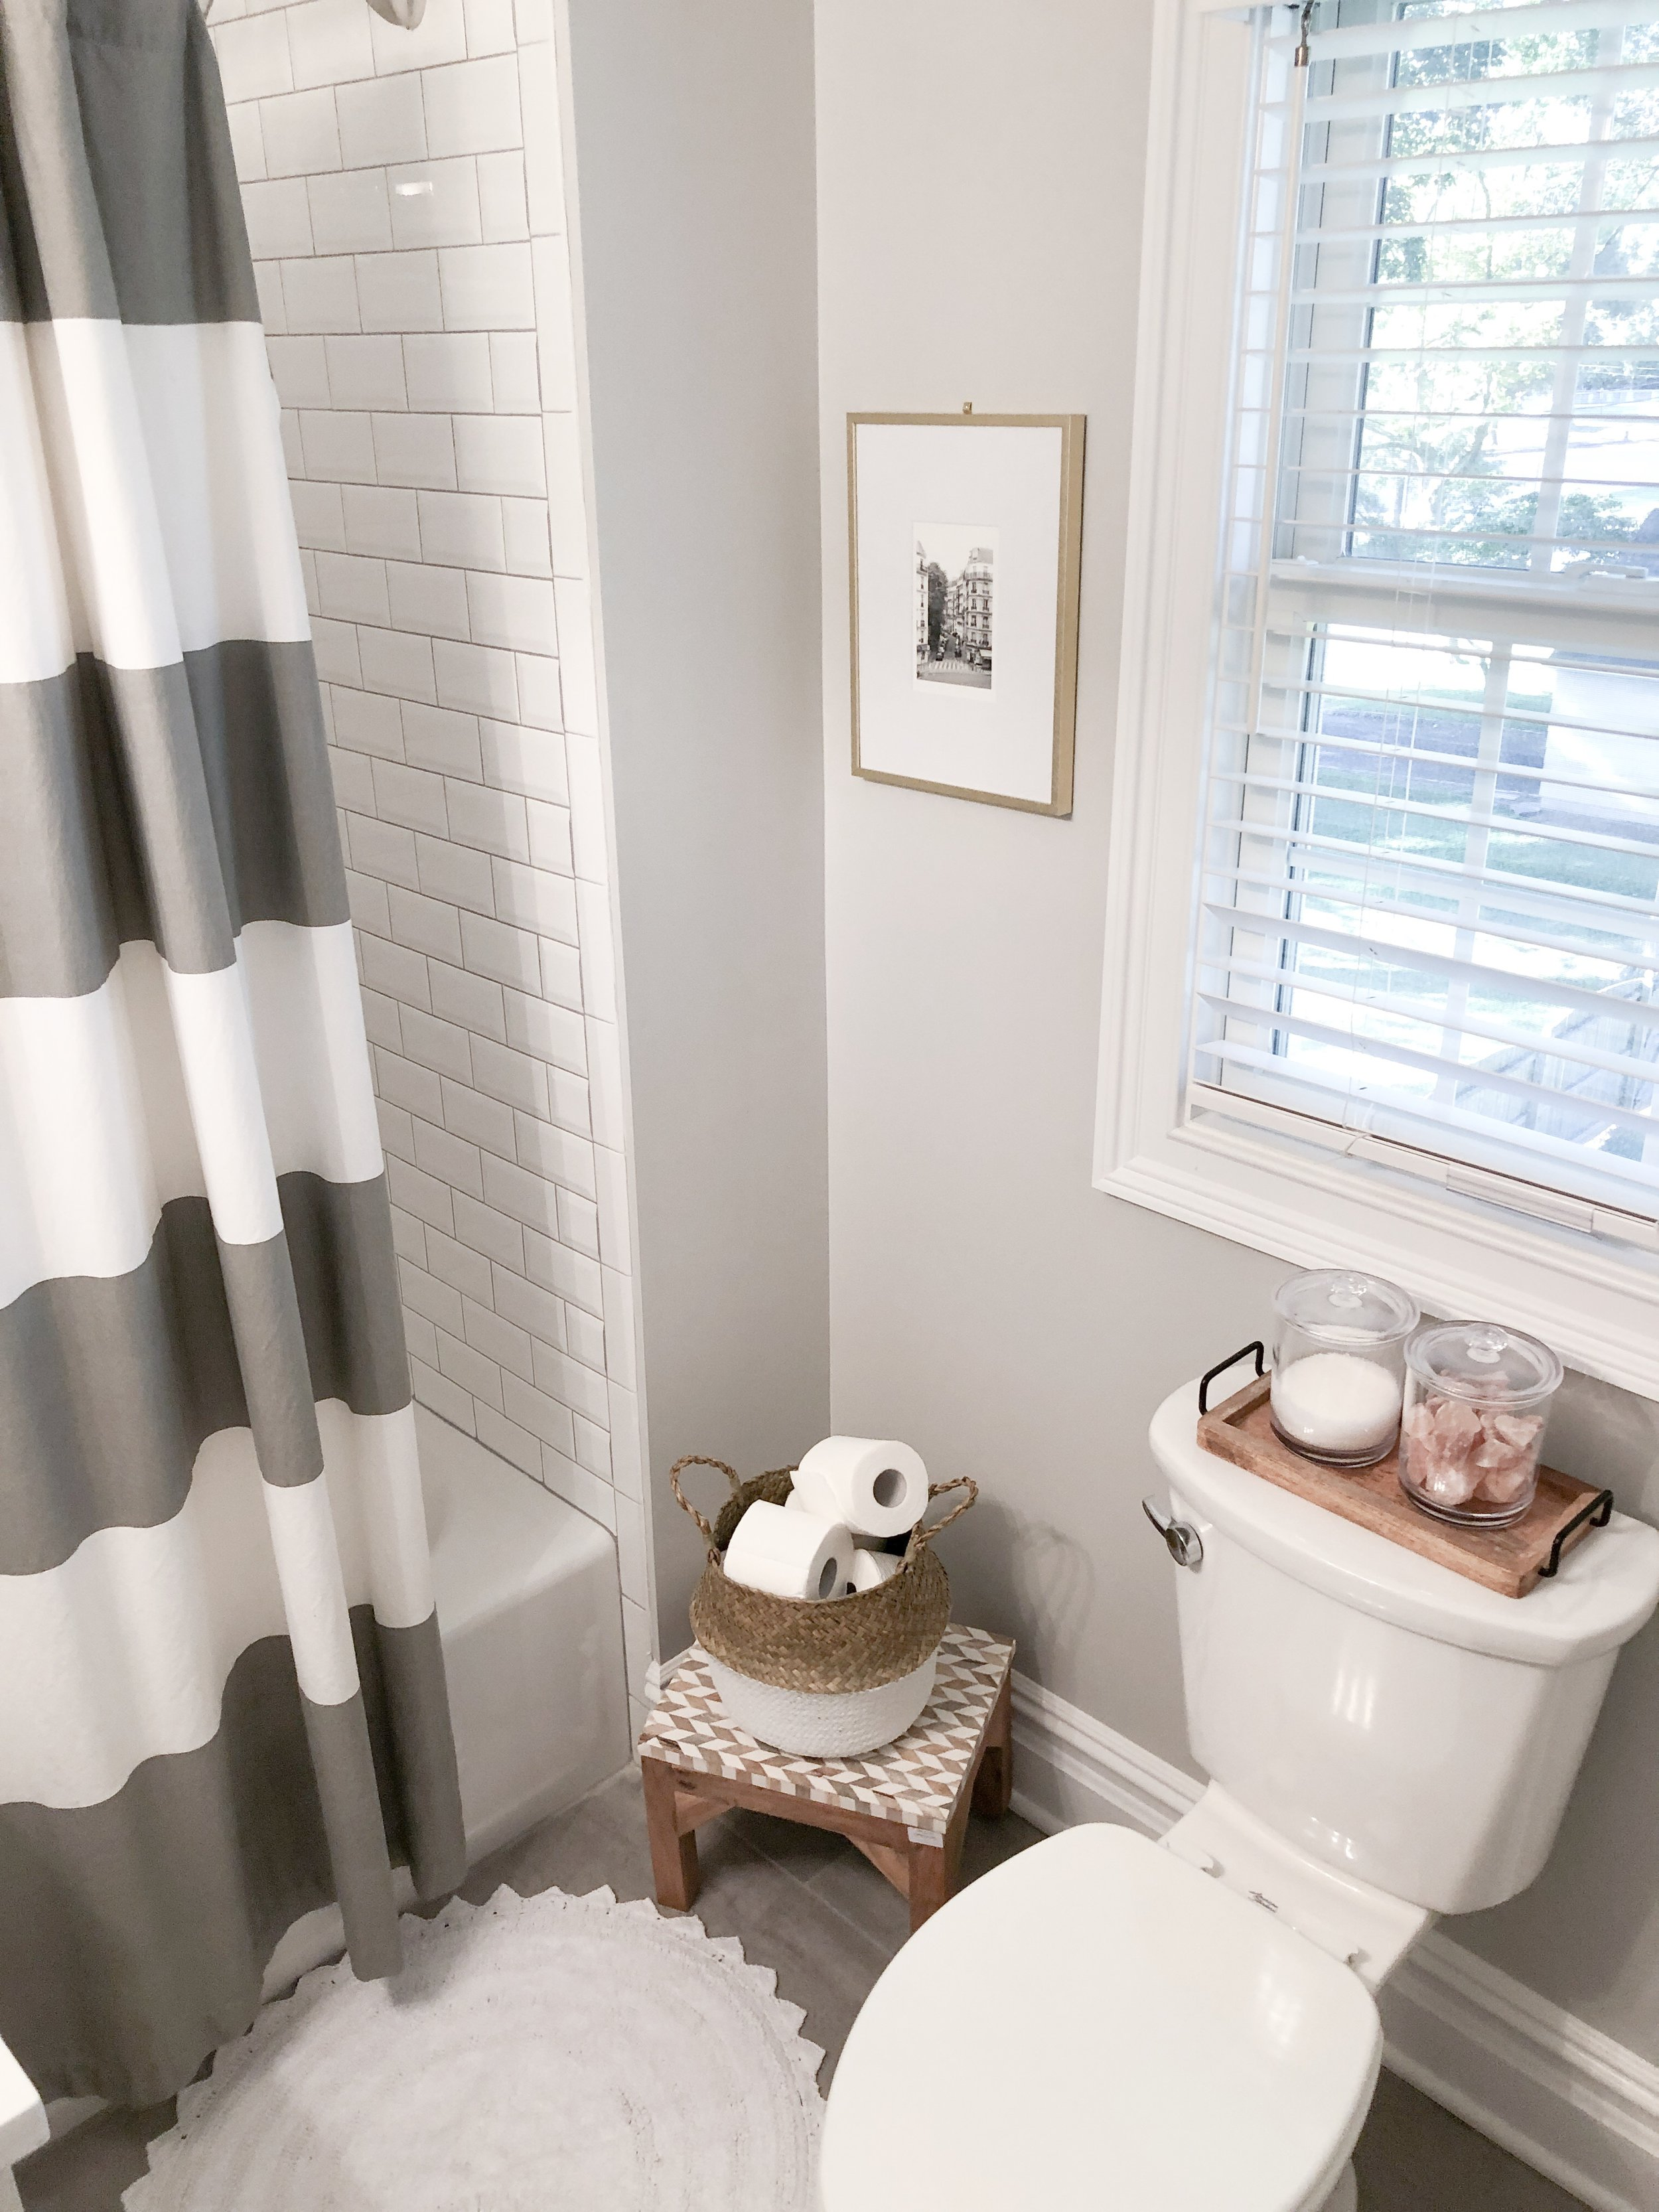 A look at our newly updated attic bathroom, courtesy of Walmart Home!